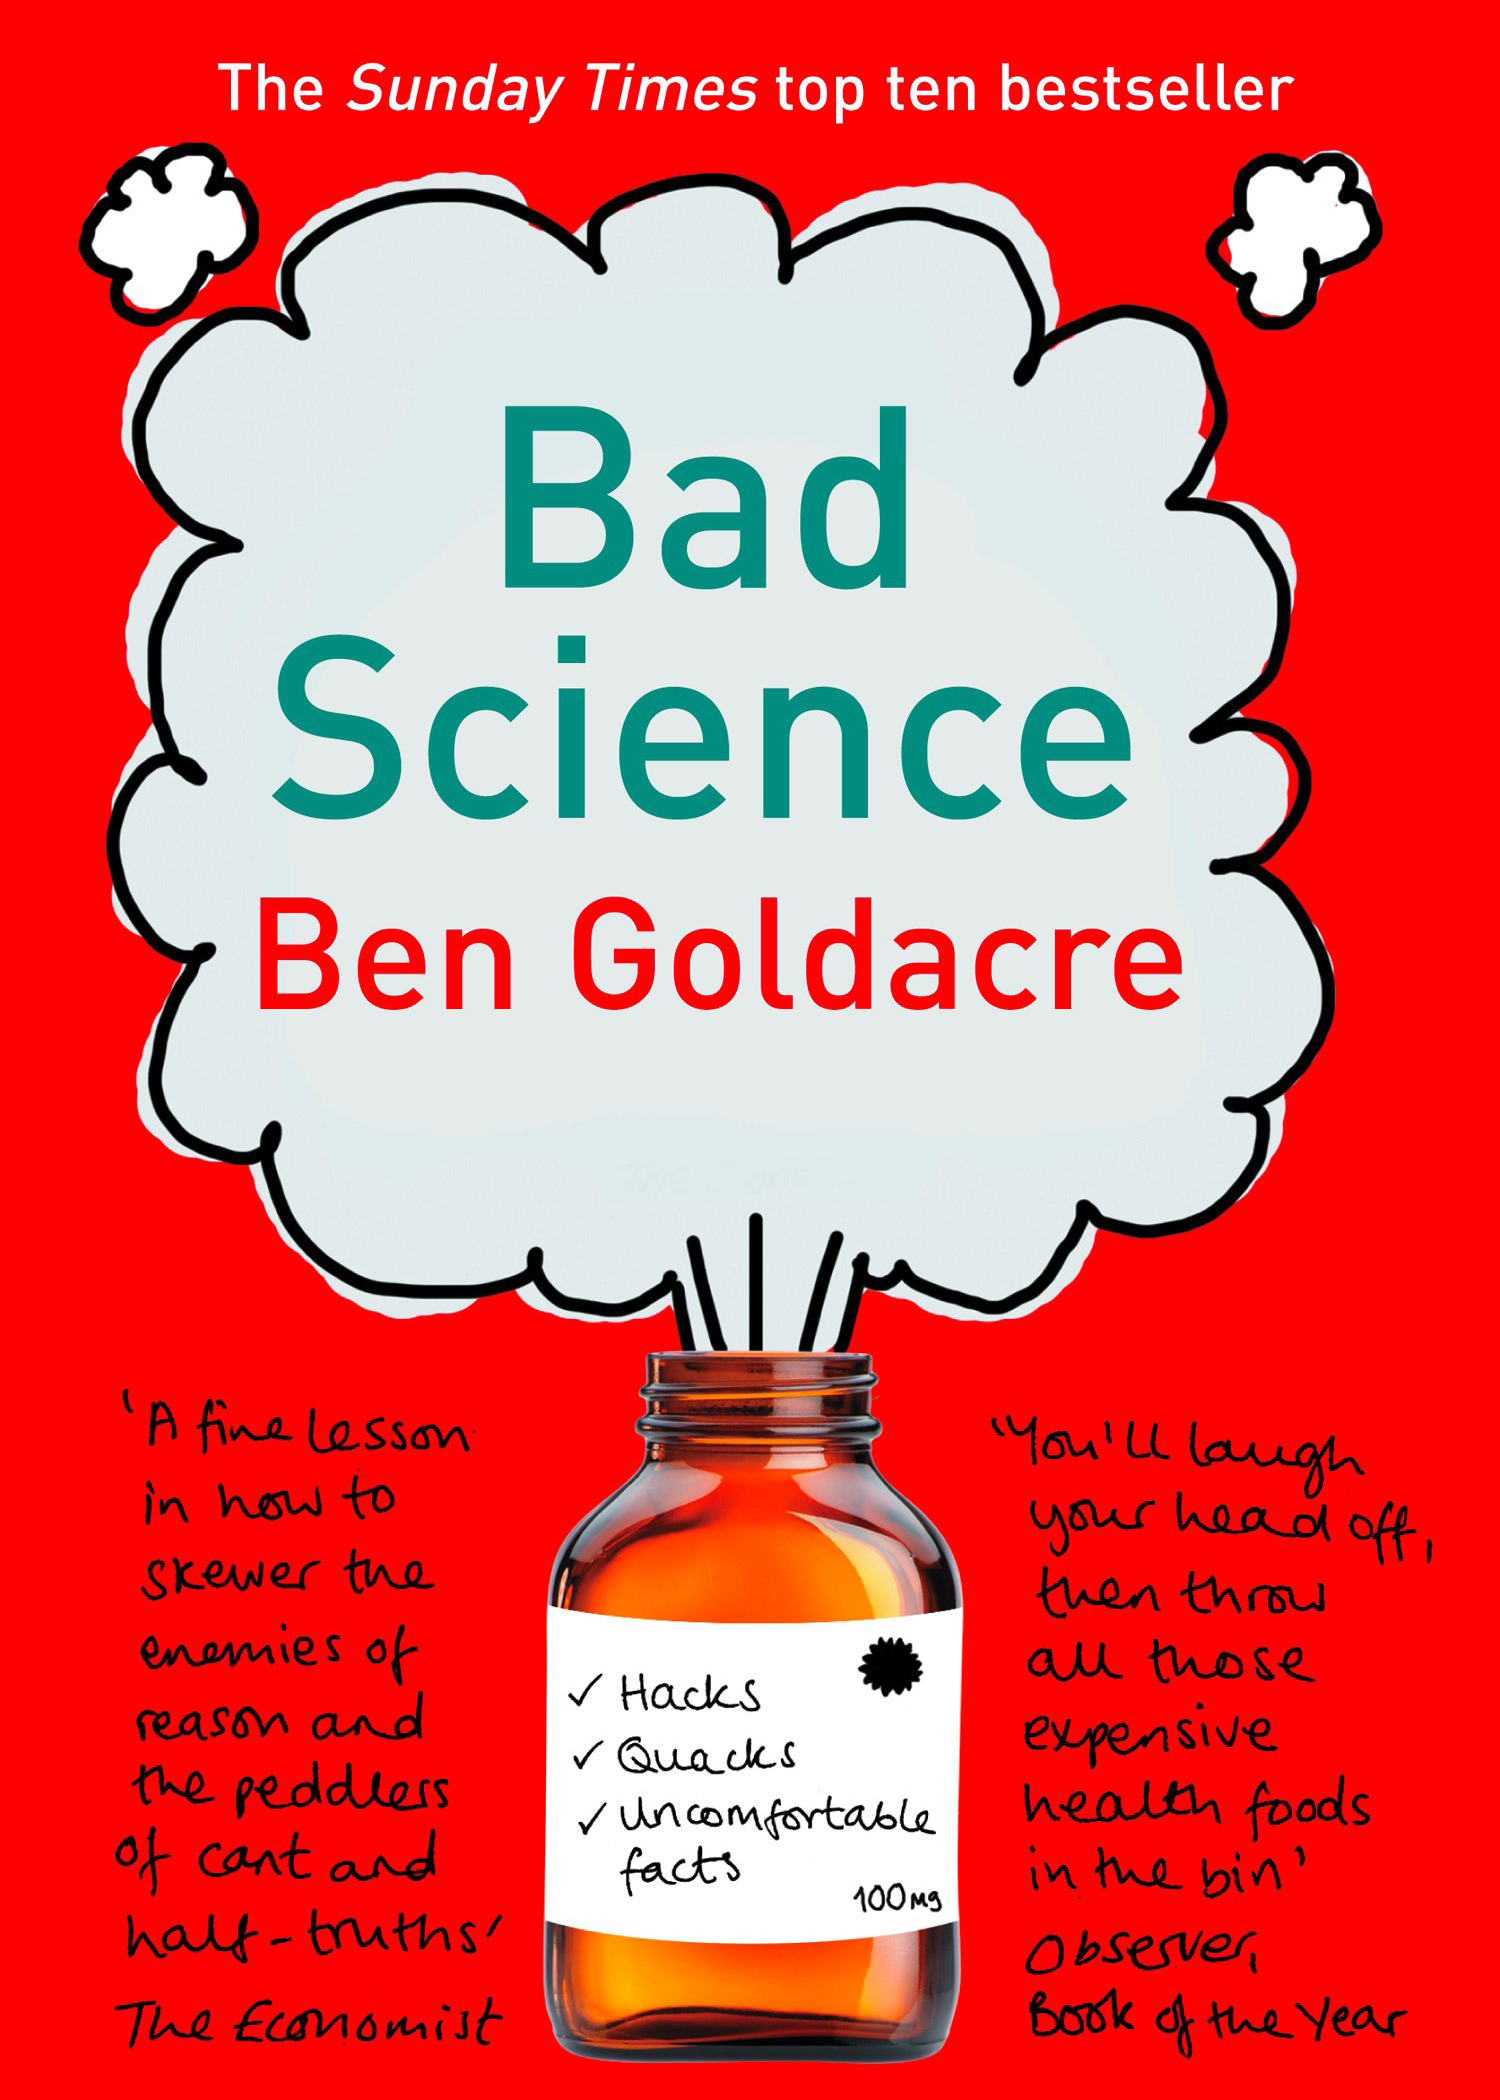 Goldacre, Ben - Bad Science.jpg